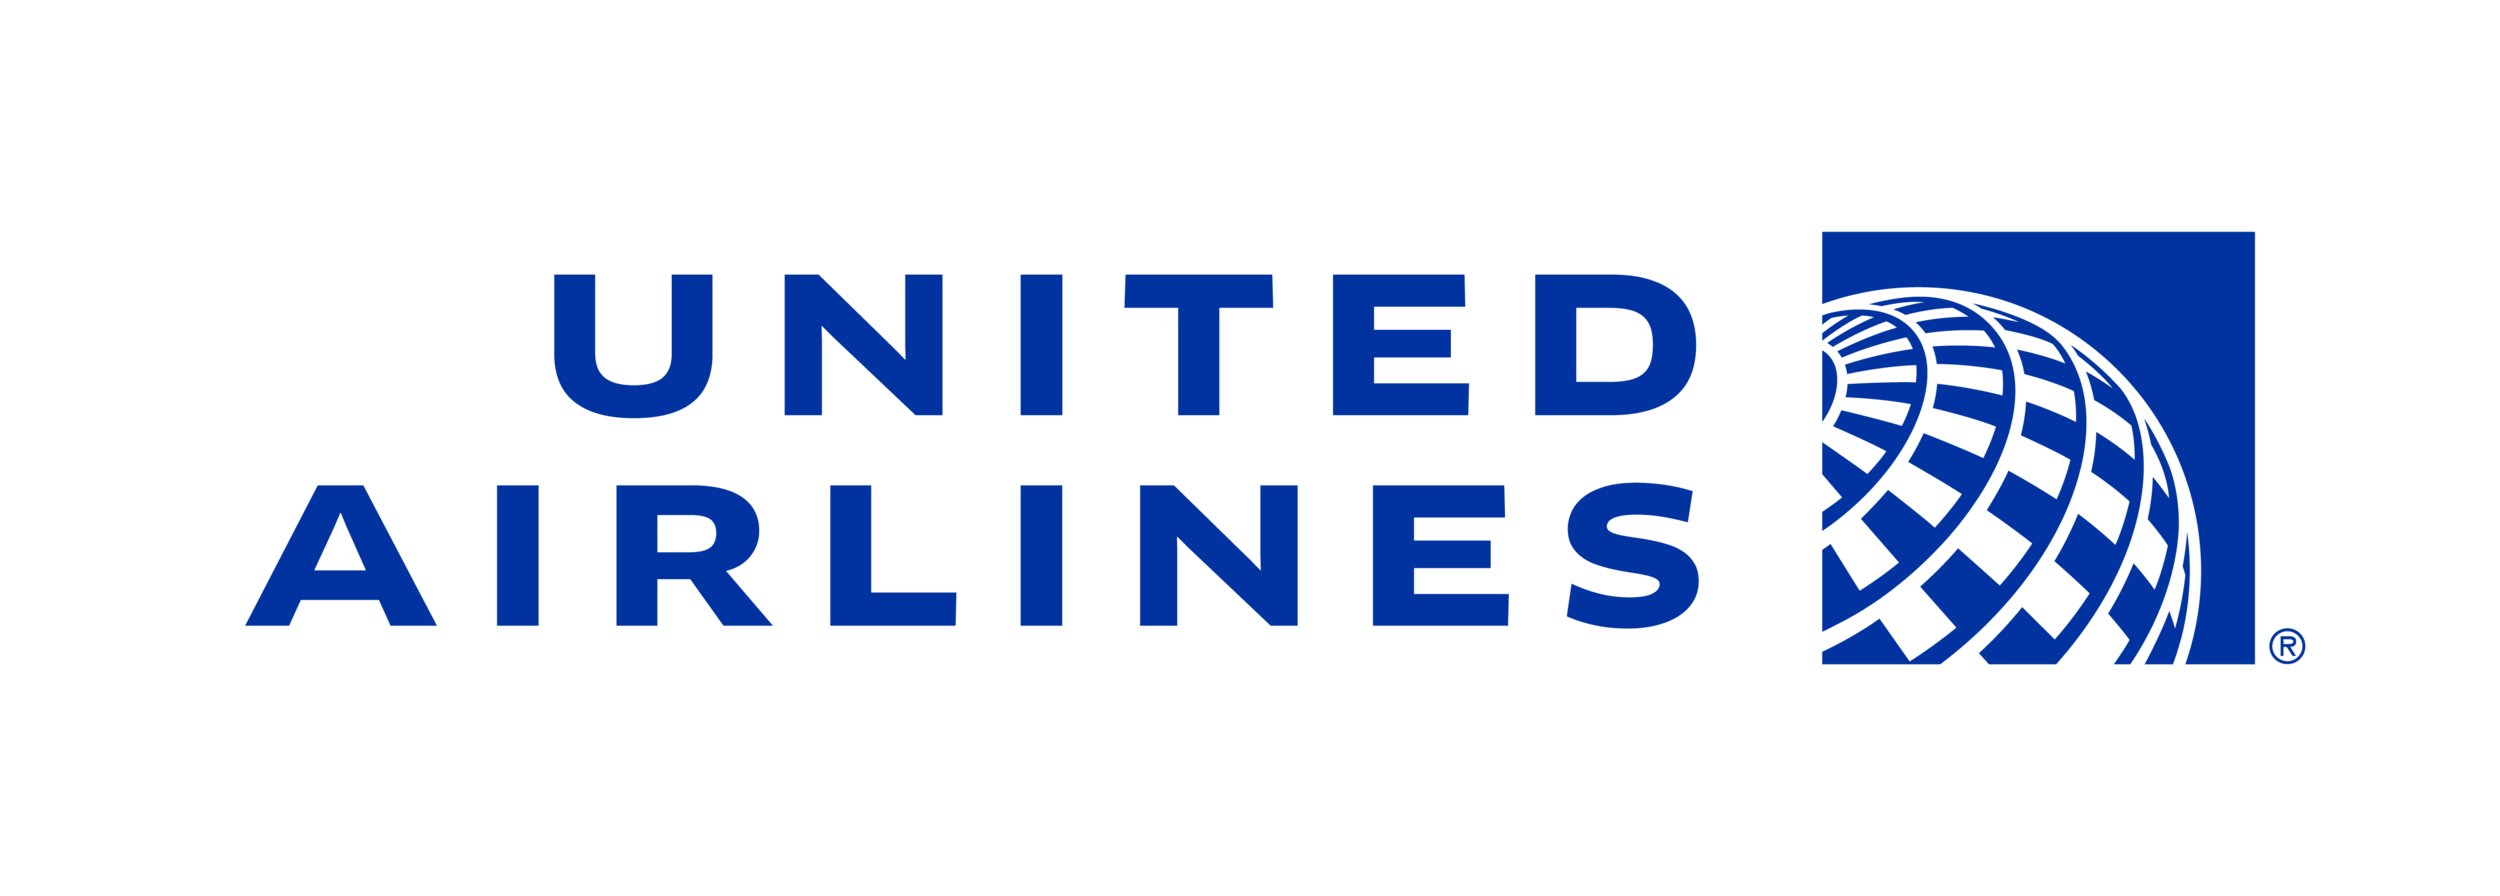 united_airlines_4p_stacked_rgb_r.png